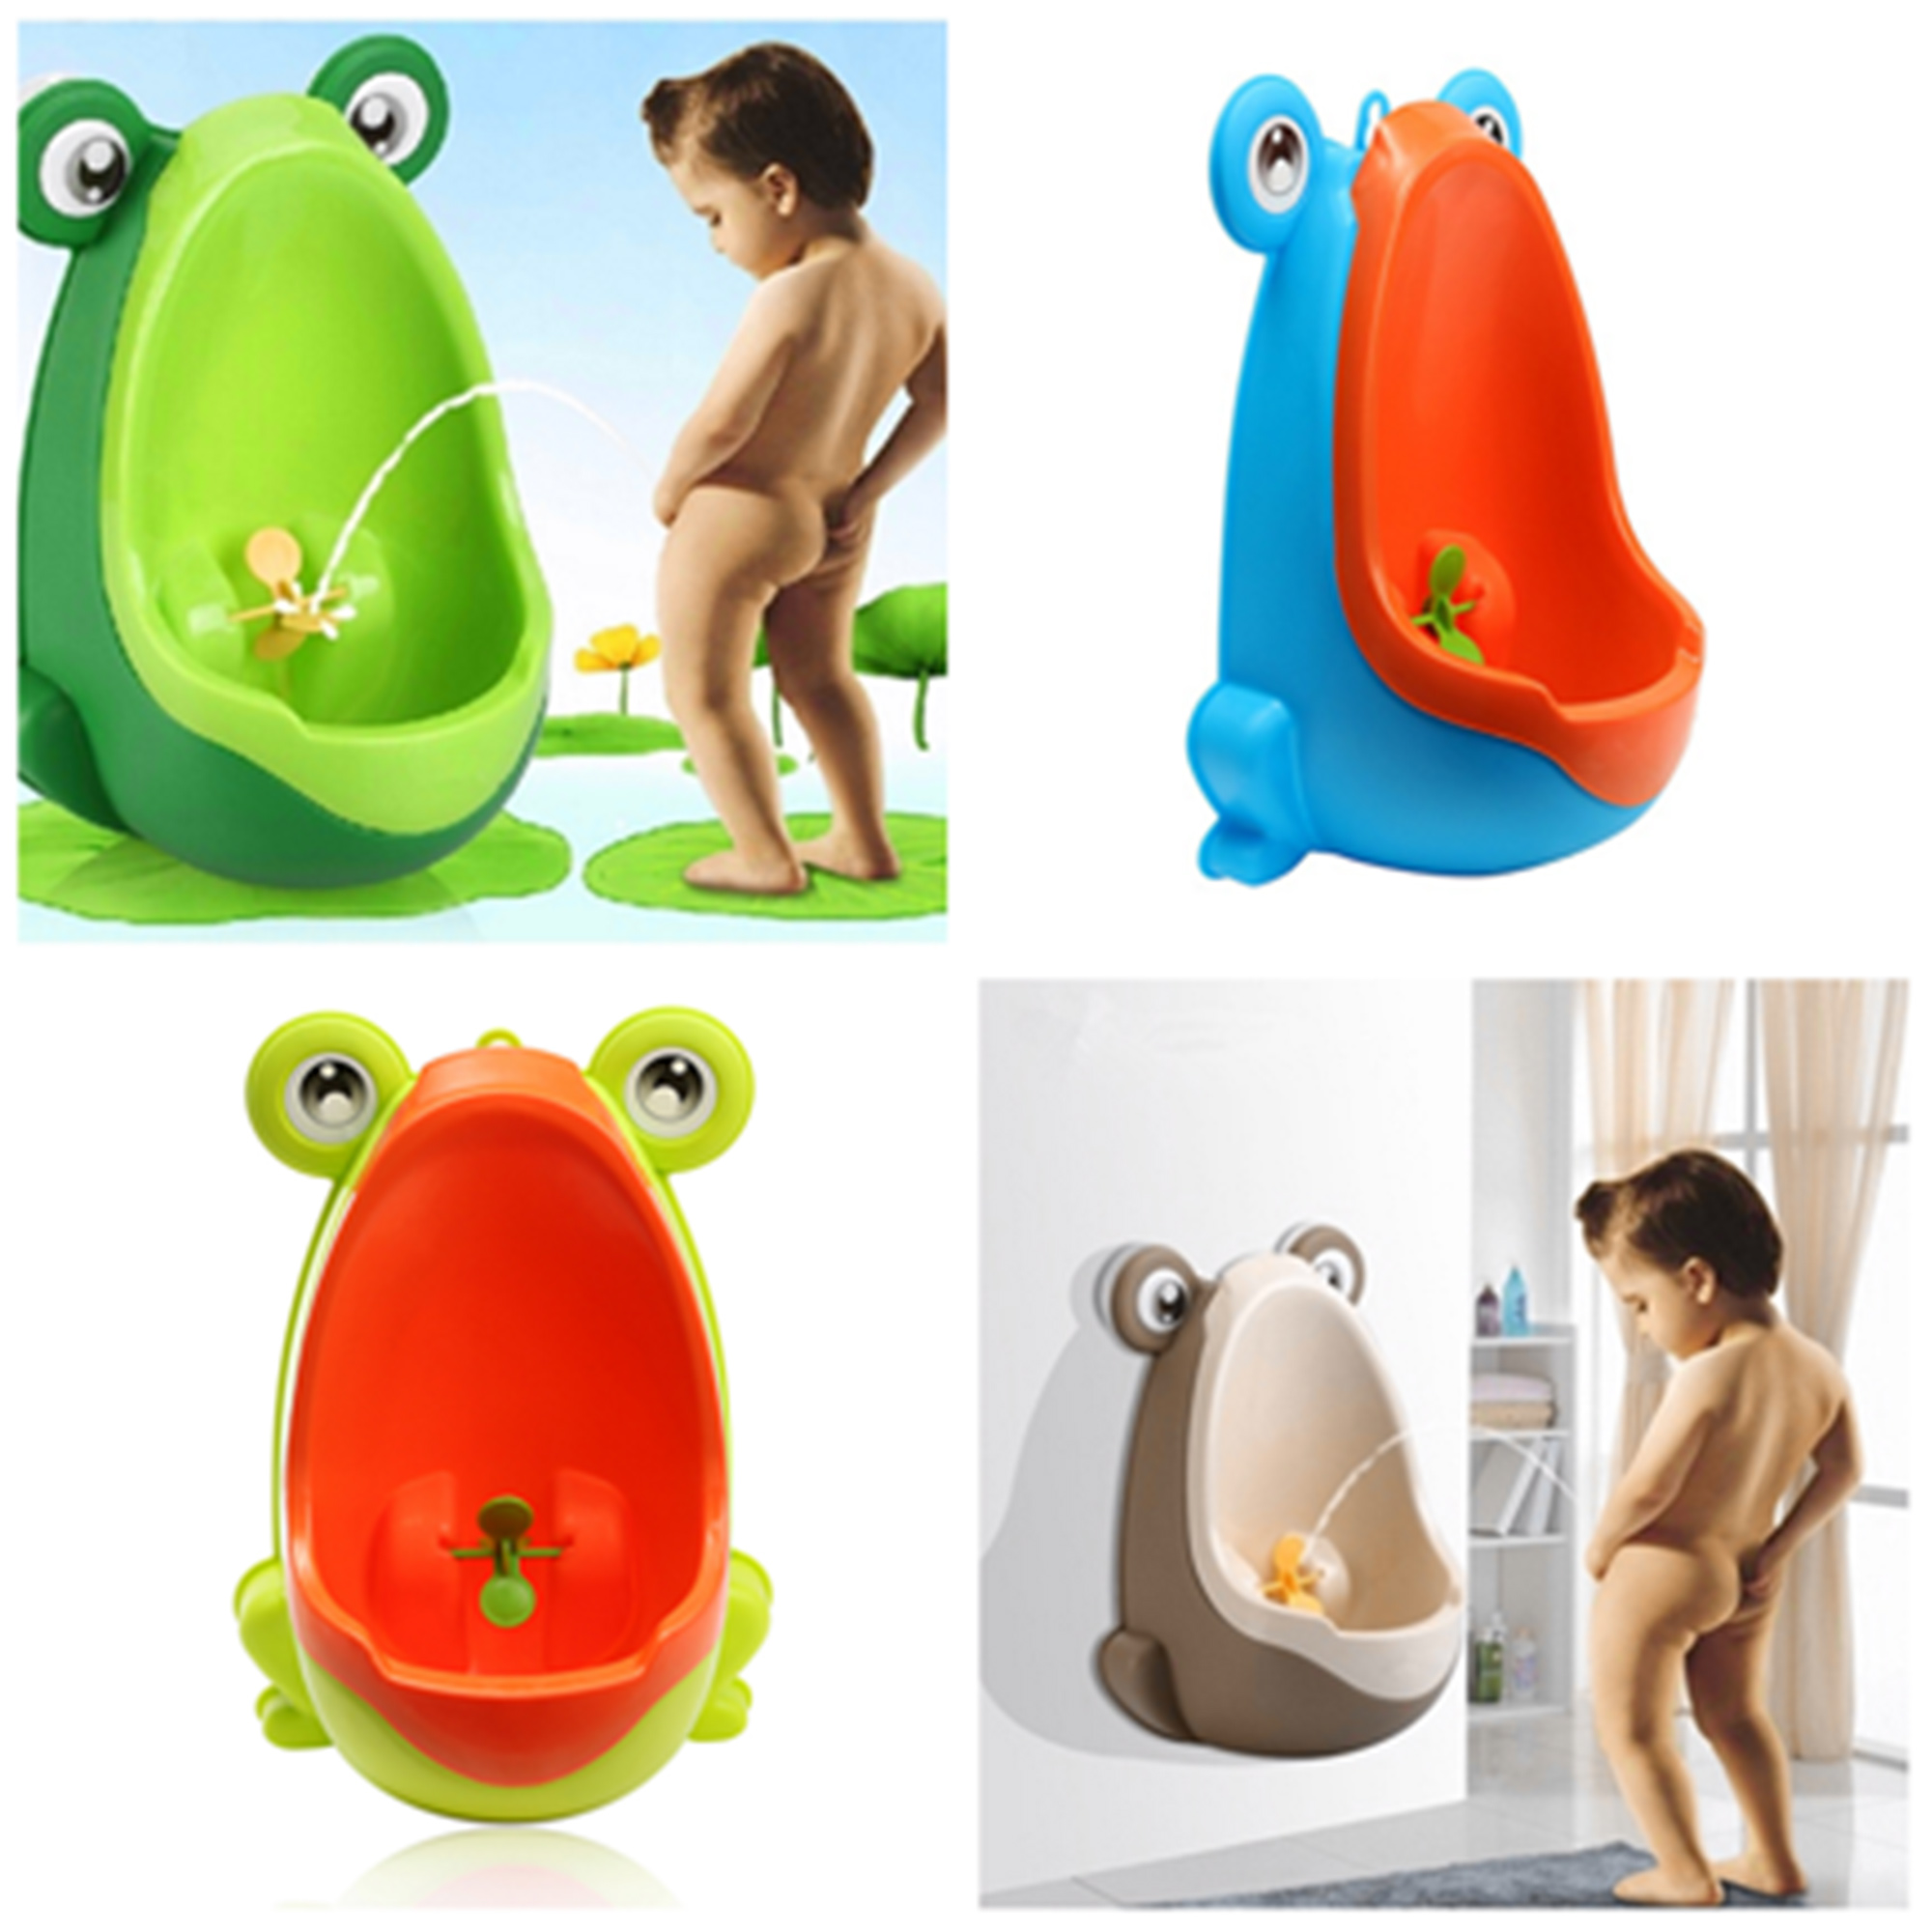 Baby Potty Training Little Boys' Urinal Bathroom Hanging Pee Trainer Frog